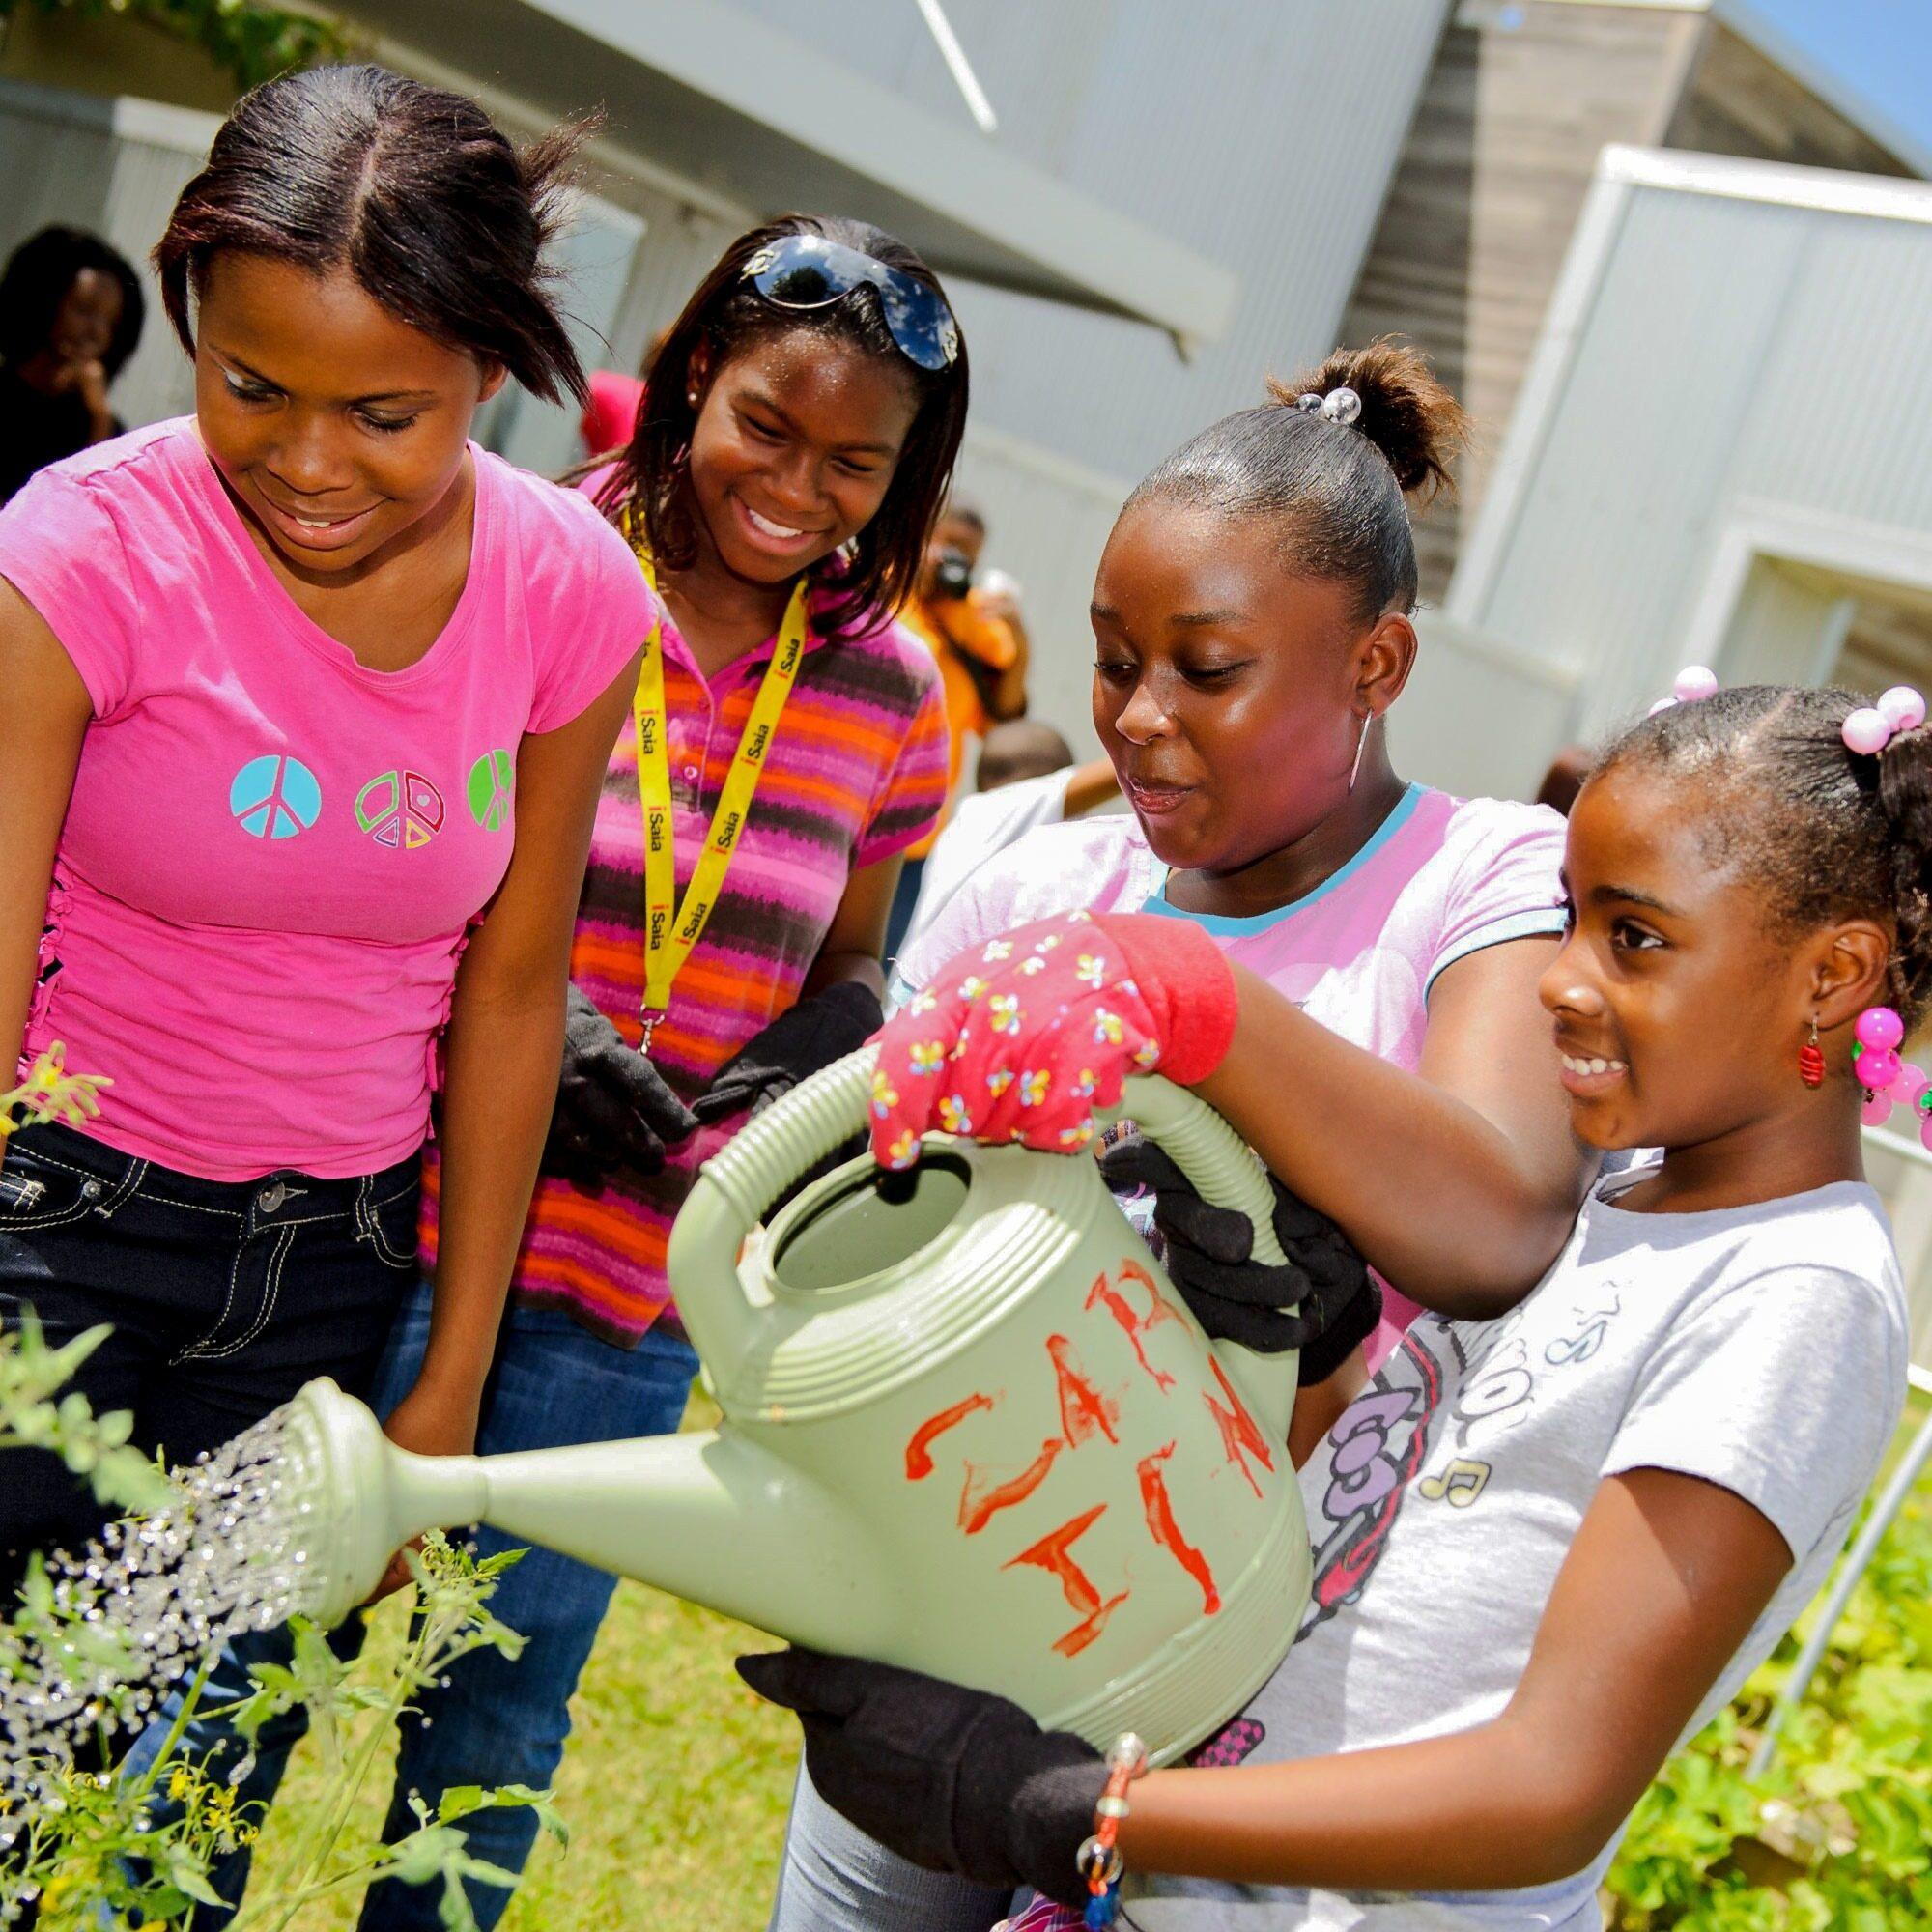 group of girls watering plants